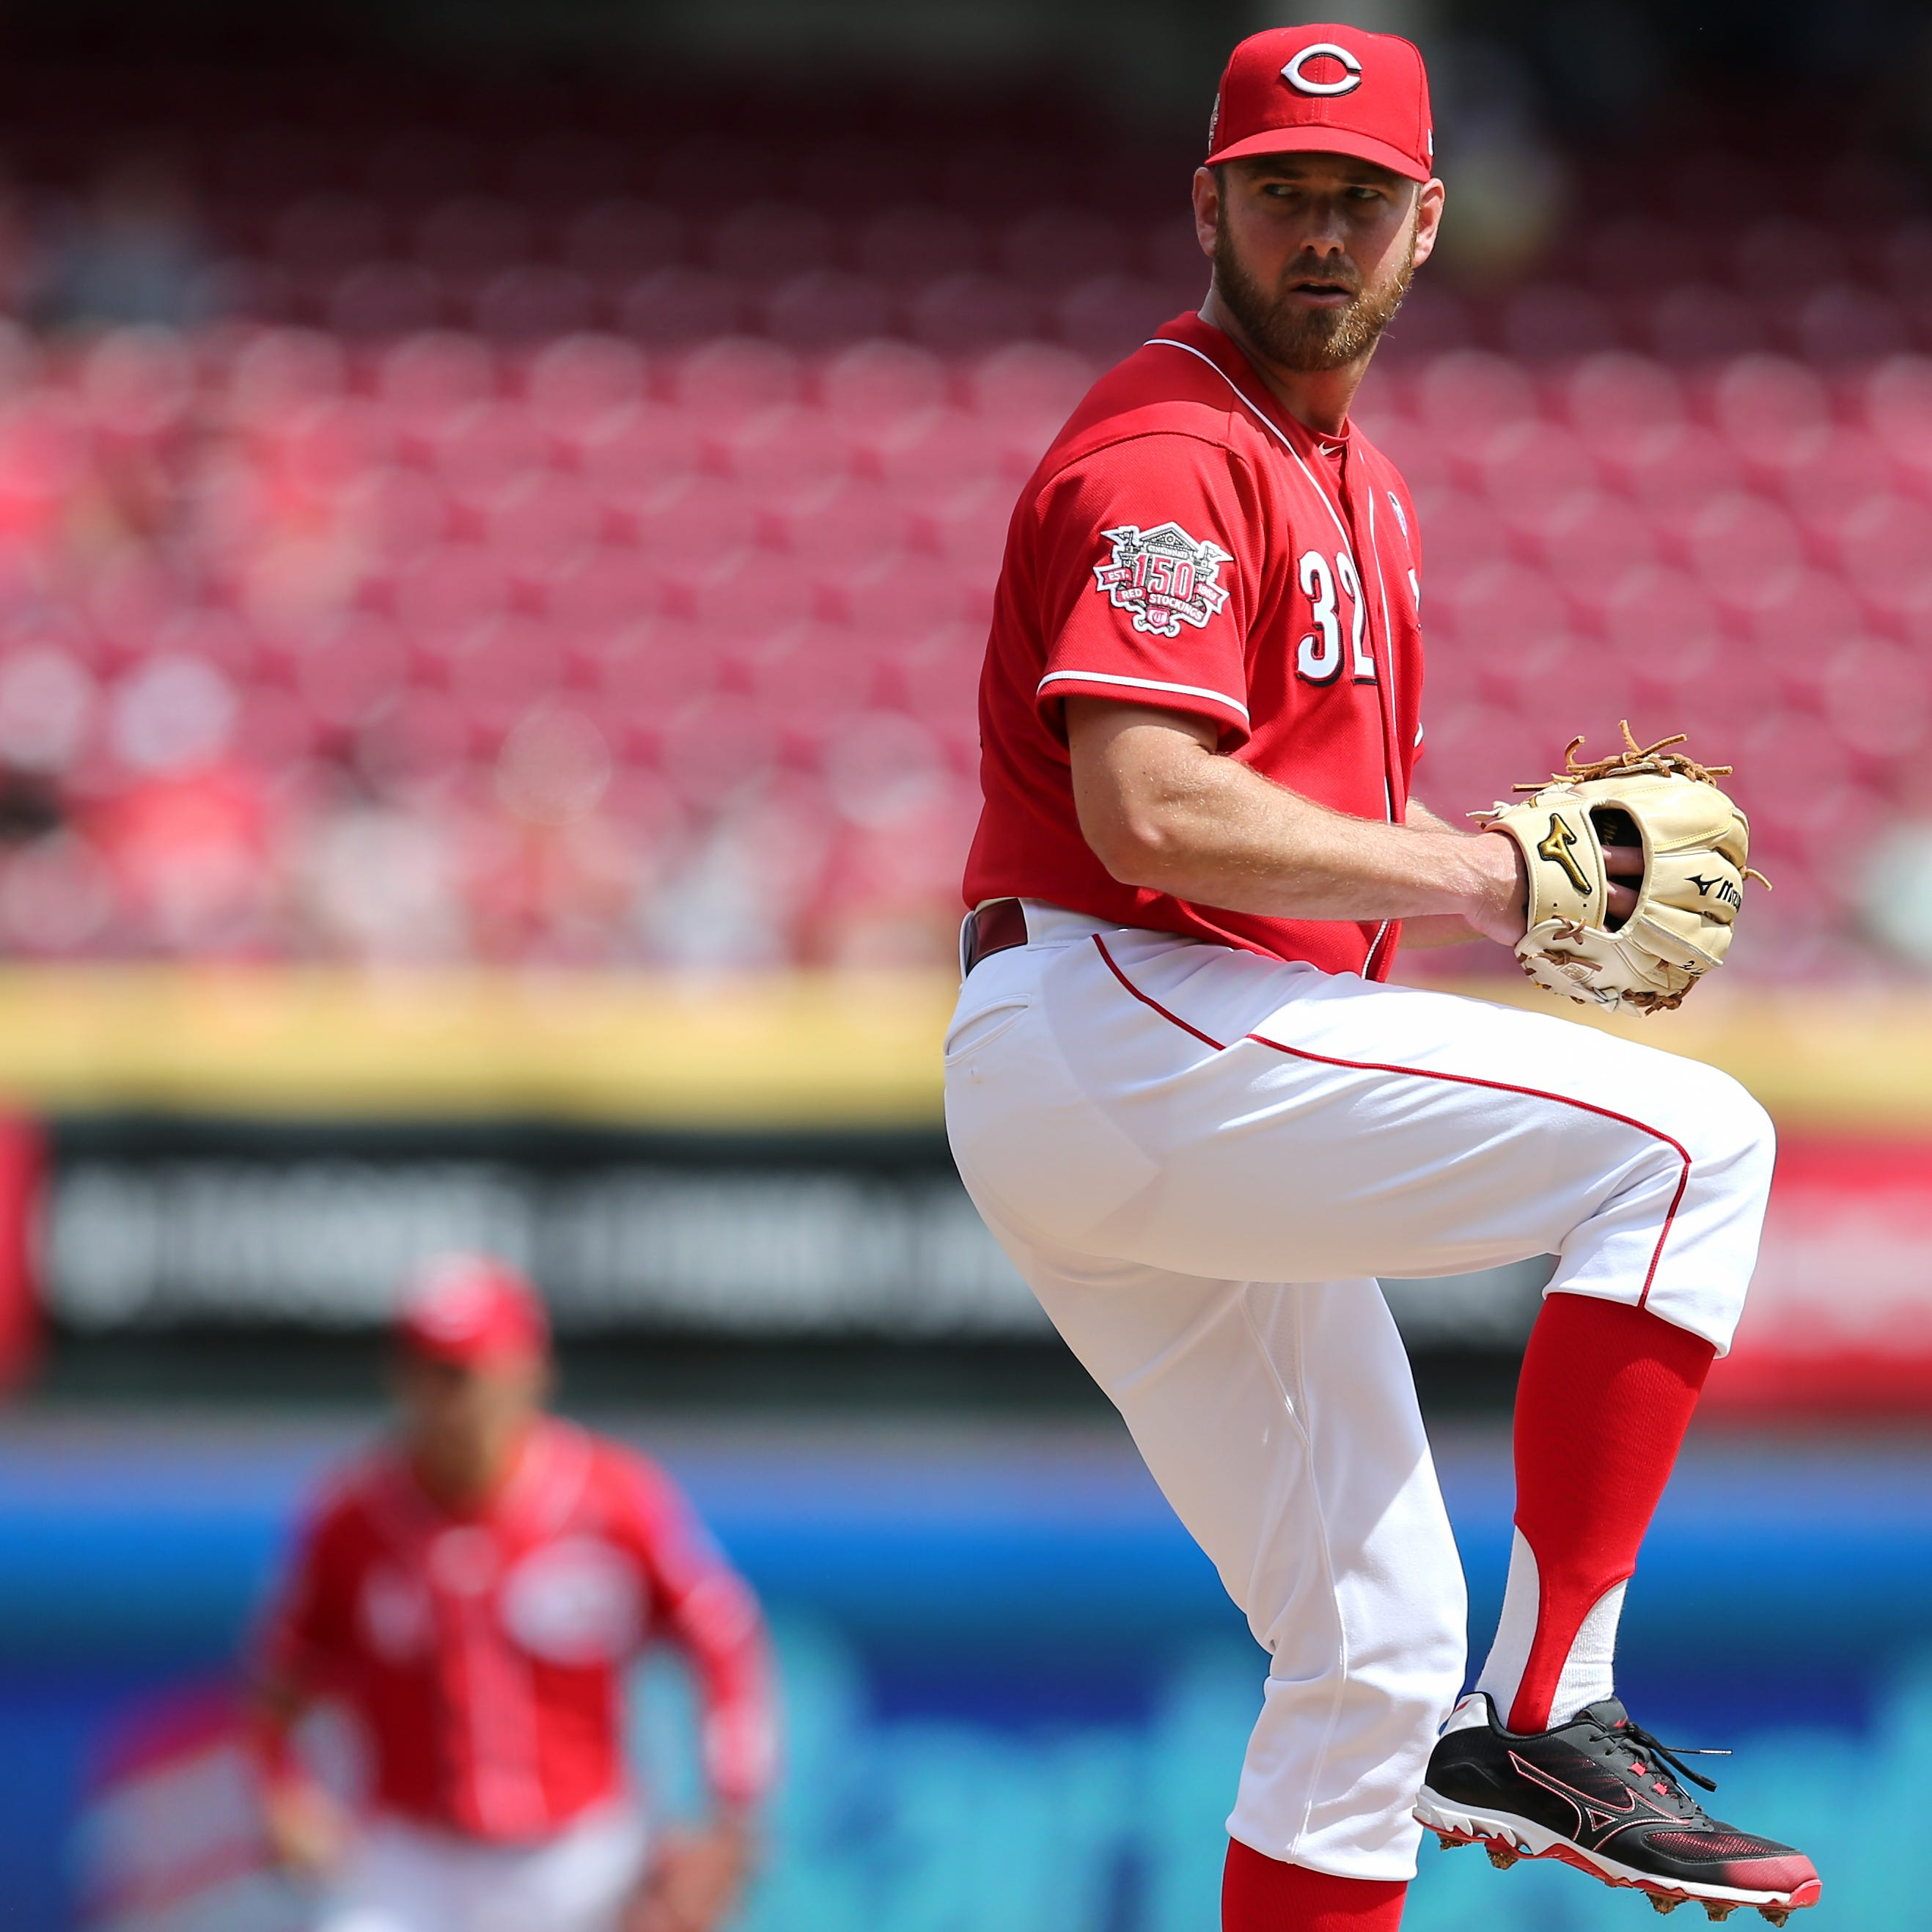 Cincinnati Reds believe Zach Duke is back on track after early-season struggles